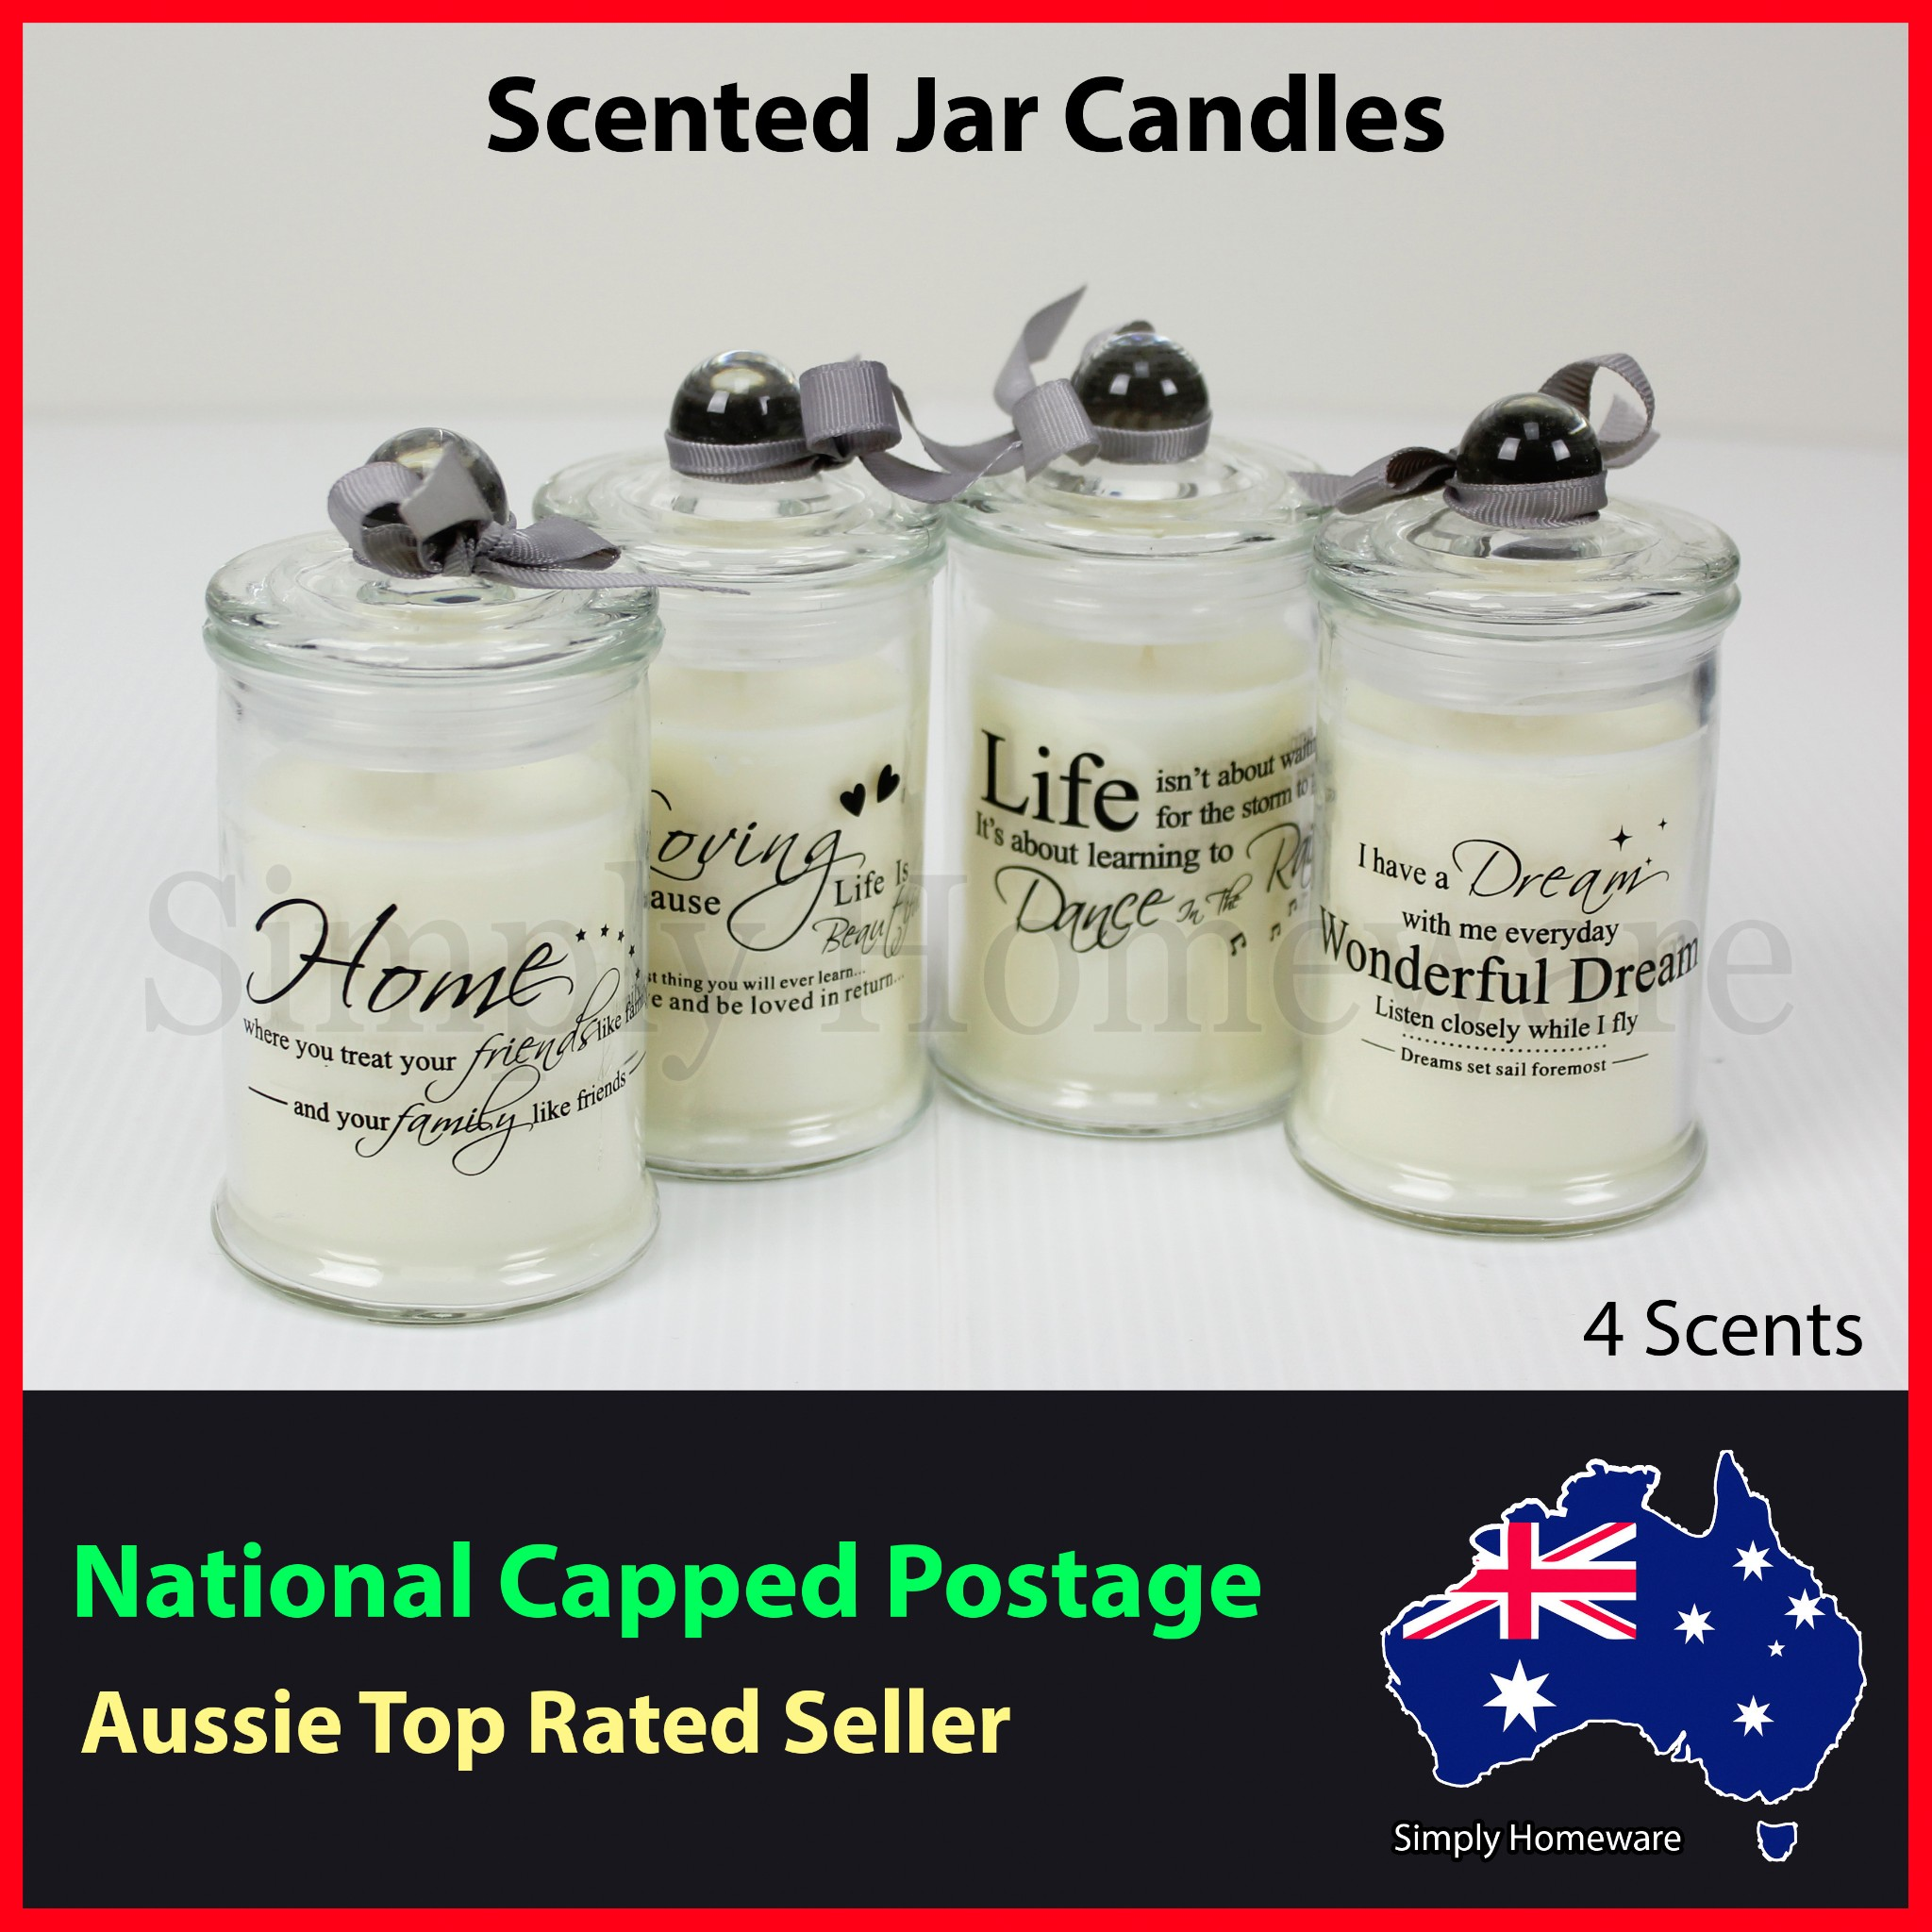 Scented Jar Candles 100% Soy Wax Candle Scents Fragrance Fragrant - All Natural